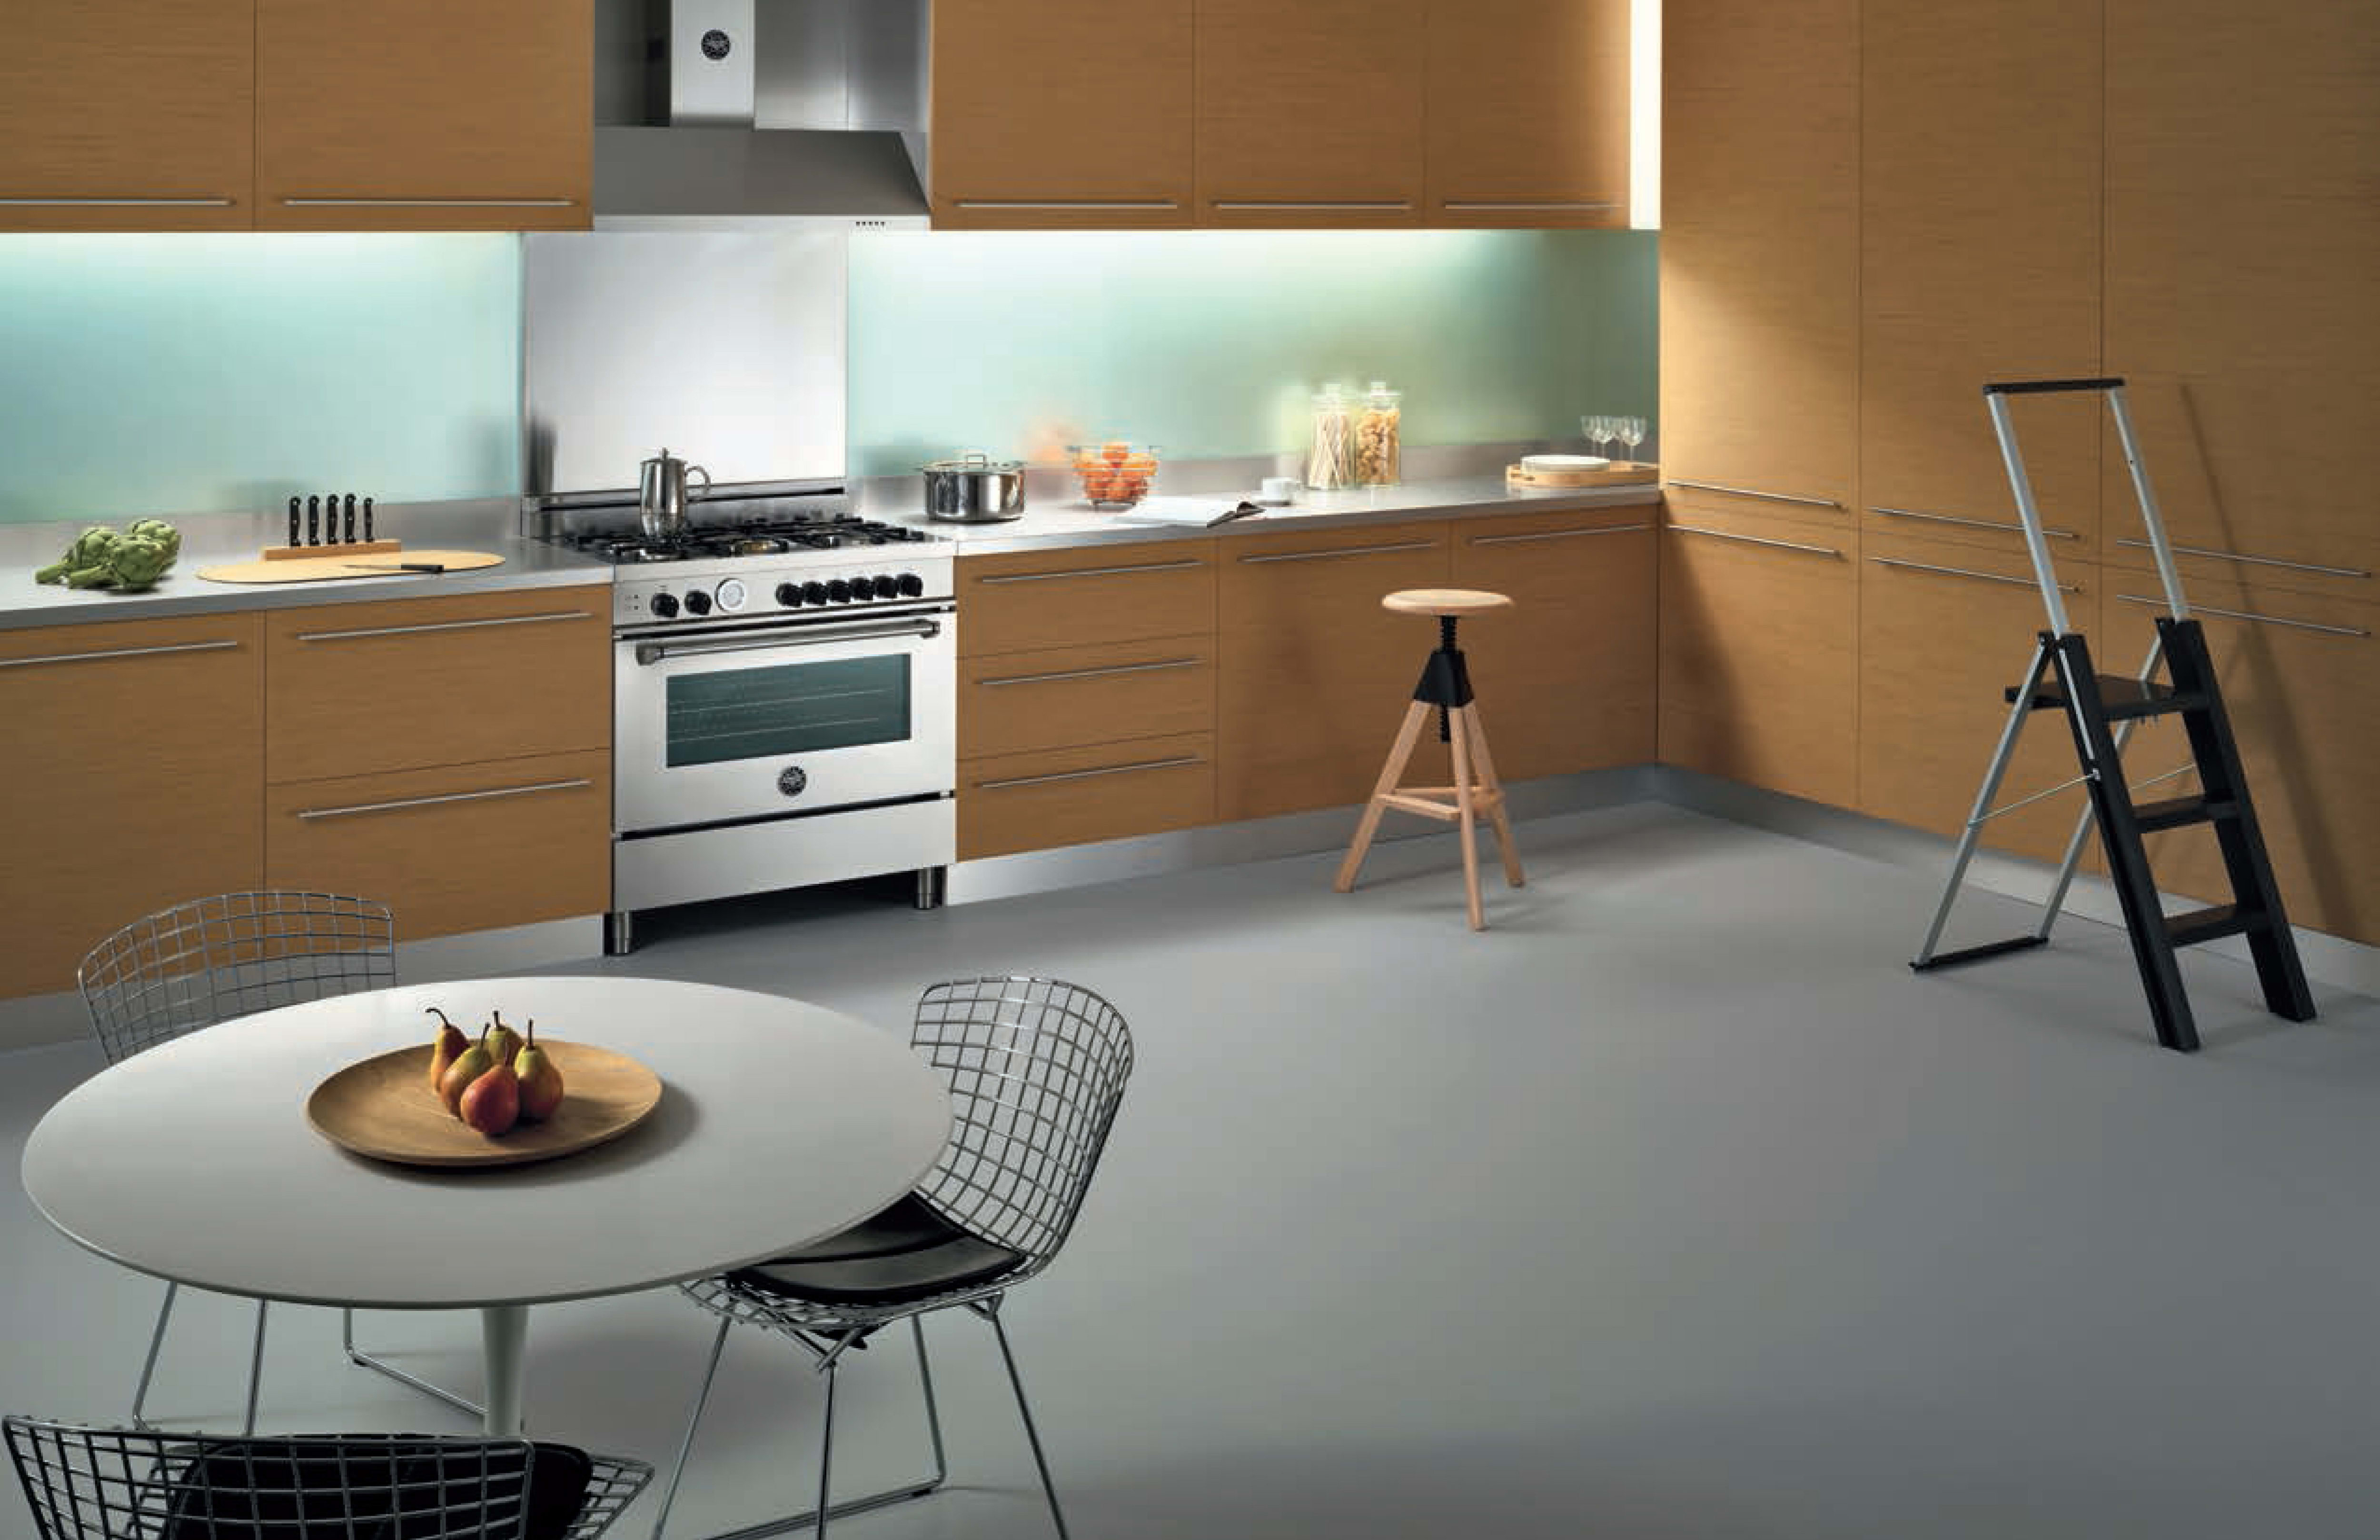 A Transitional Concept Kitchen For Bertazzoniu0027s Master Series.